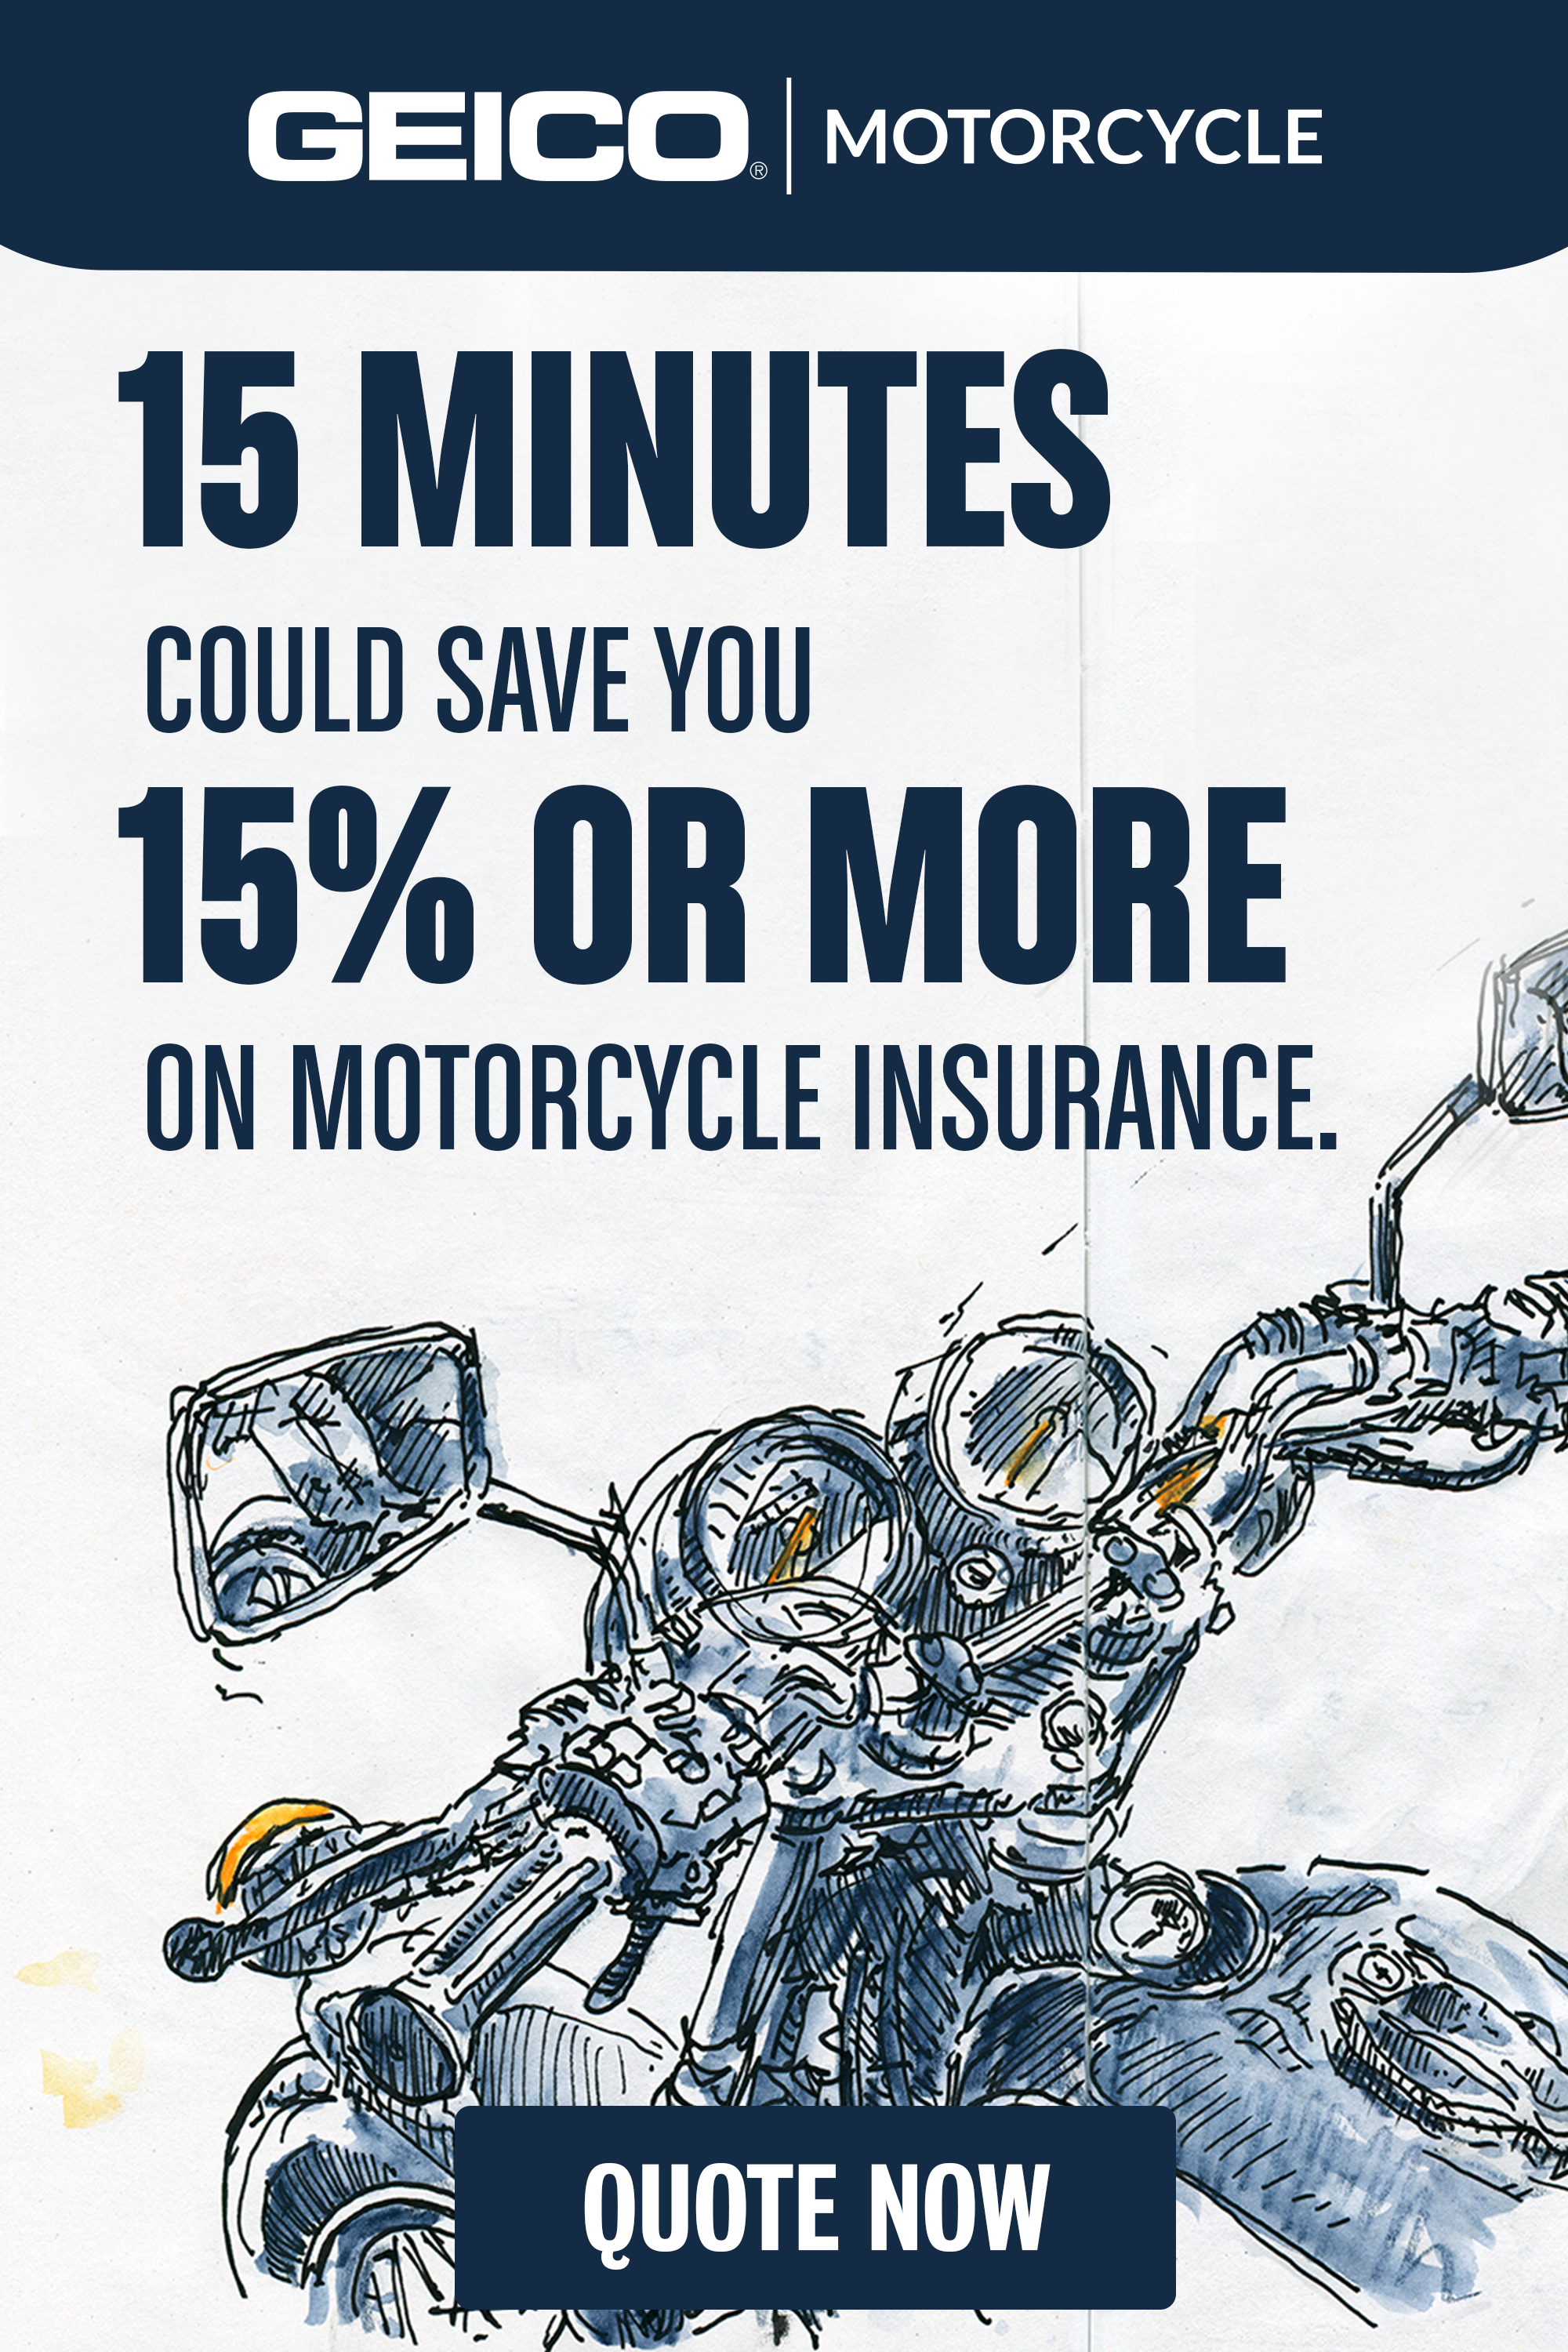 Vintage Or Very New You Could Get A Great Rate On Motorcycle Insurance With Geico Custom Motorcycle Parts Low Car Insurance Custom Bicycle